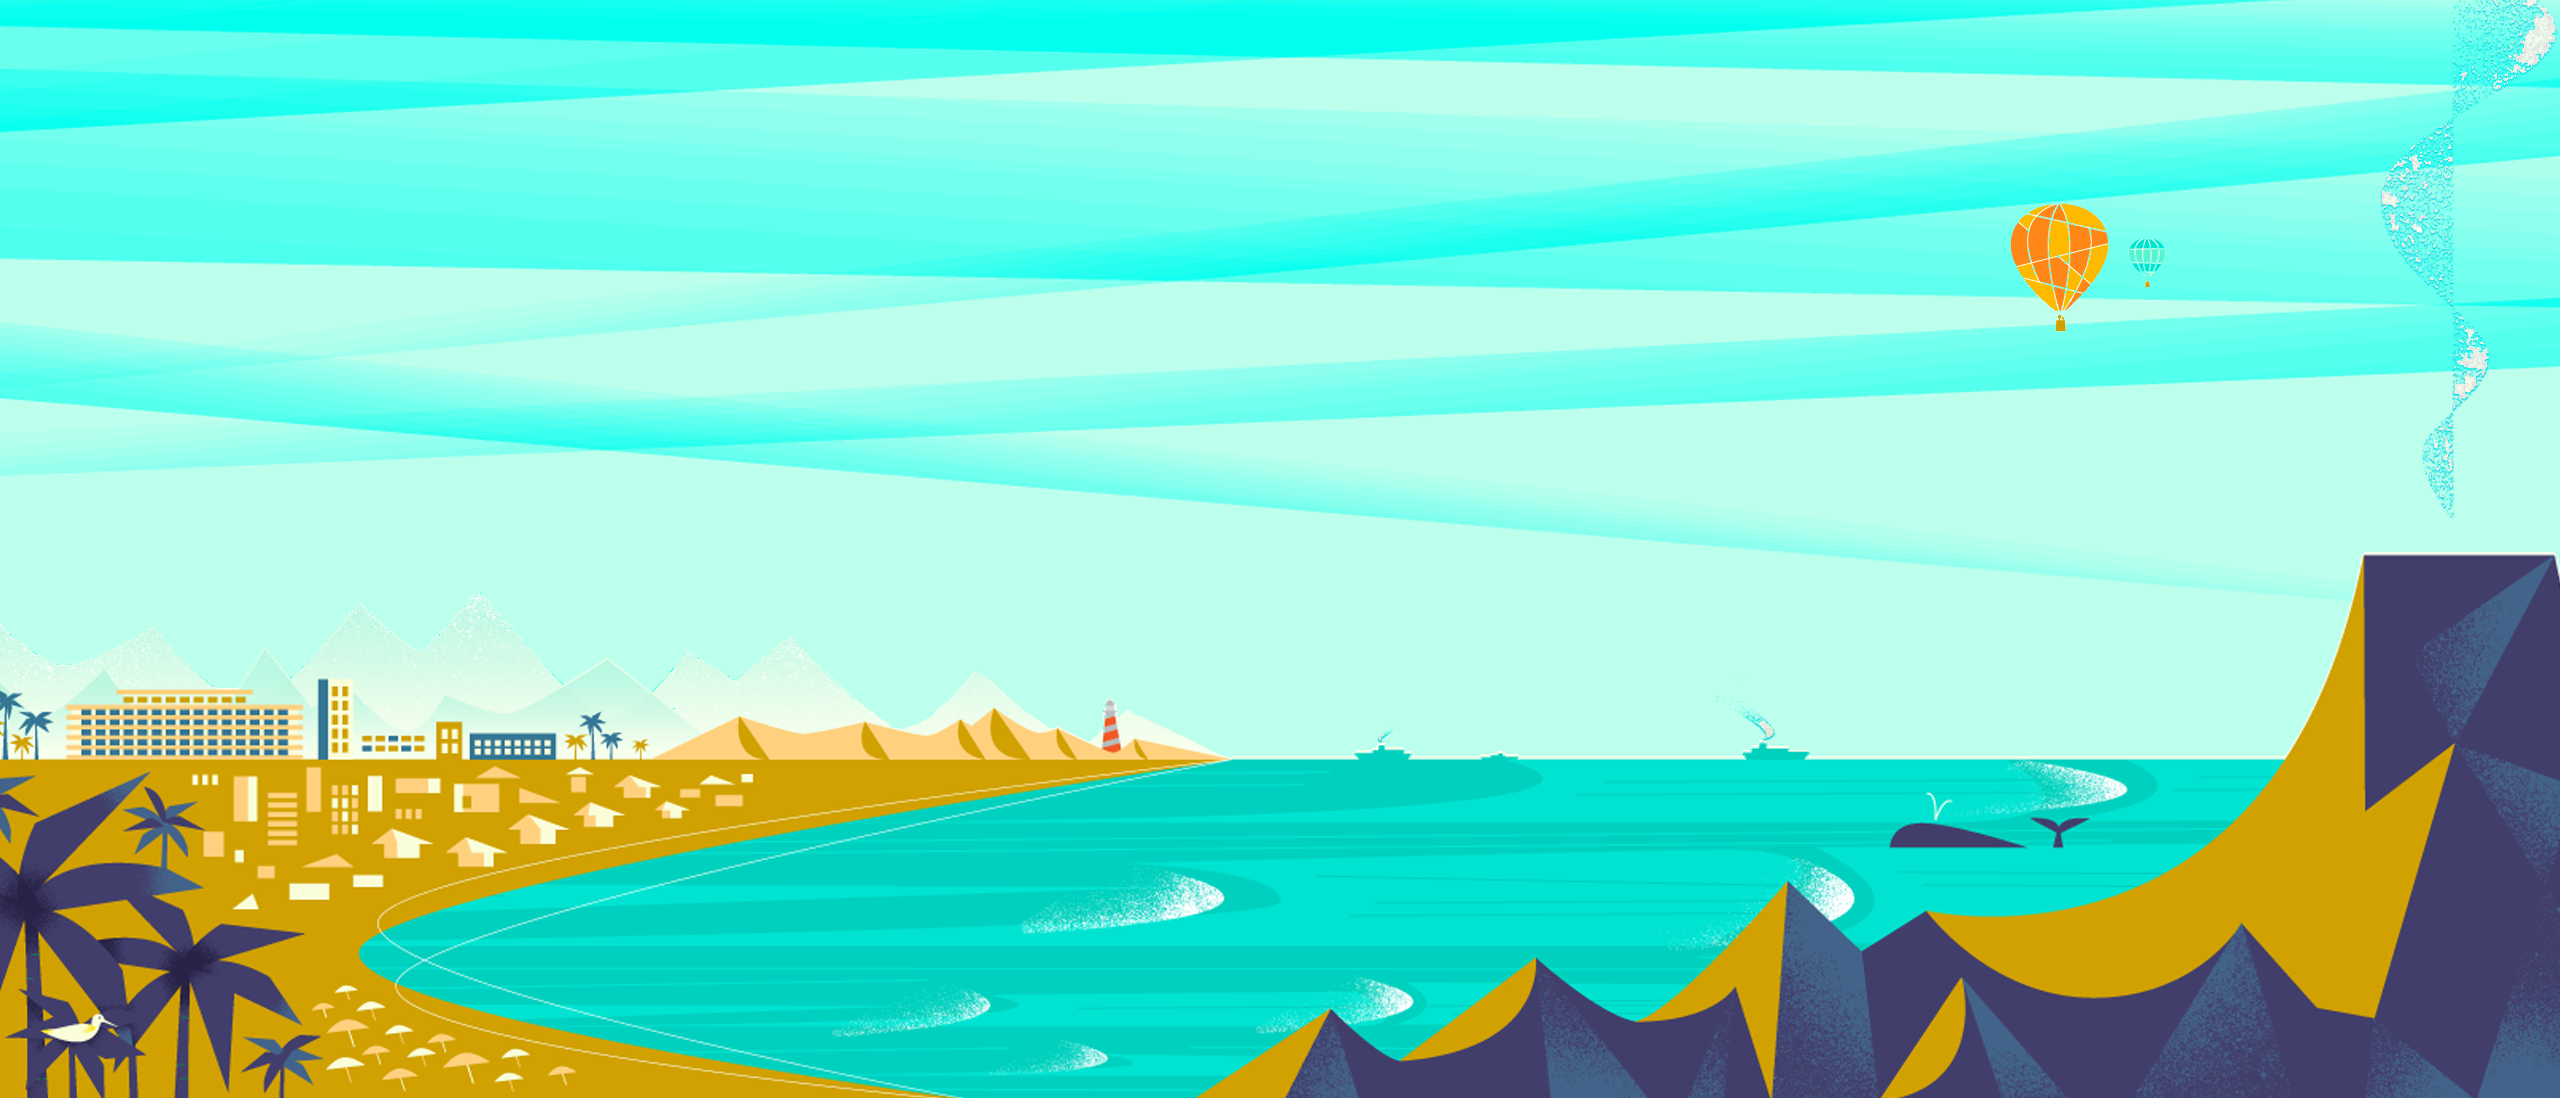 Images 44 Google Now backgrounds available in high ...